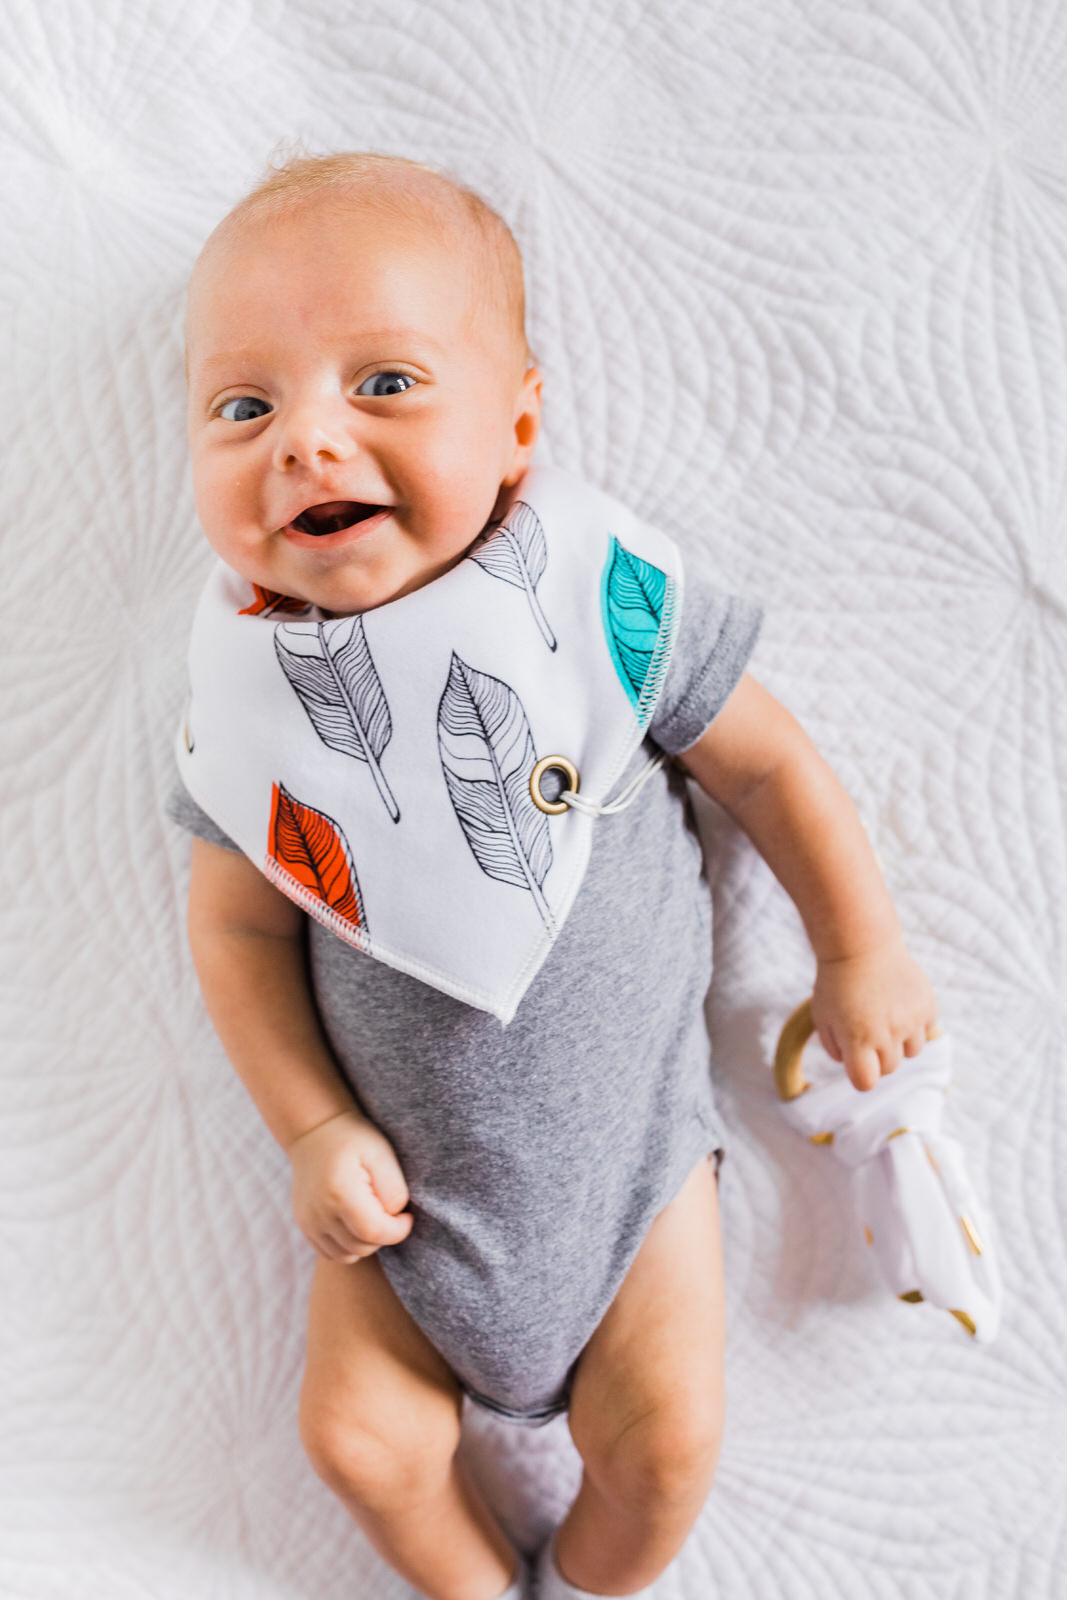 kids-clothes-small-business-baby-newborn-collaboration-7579.jpg